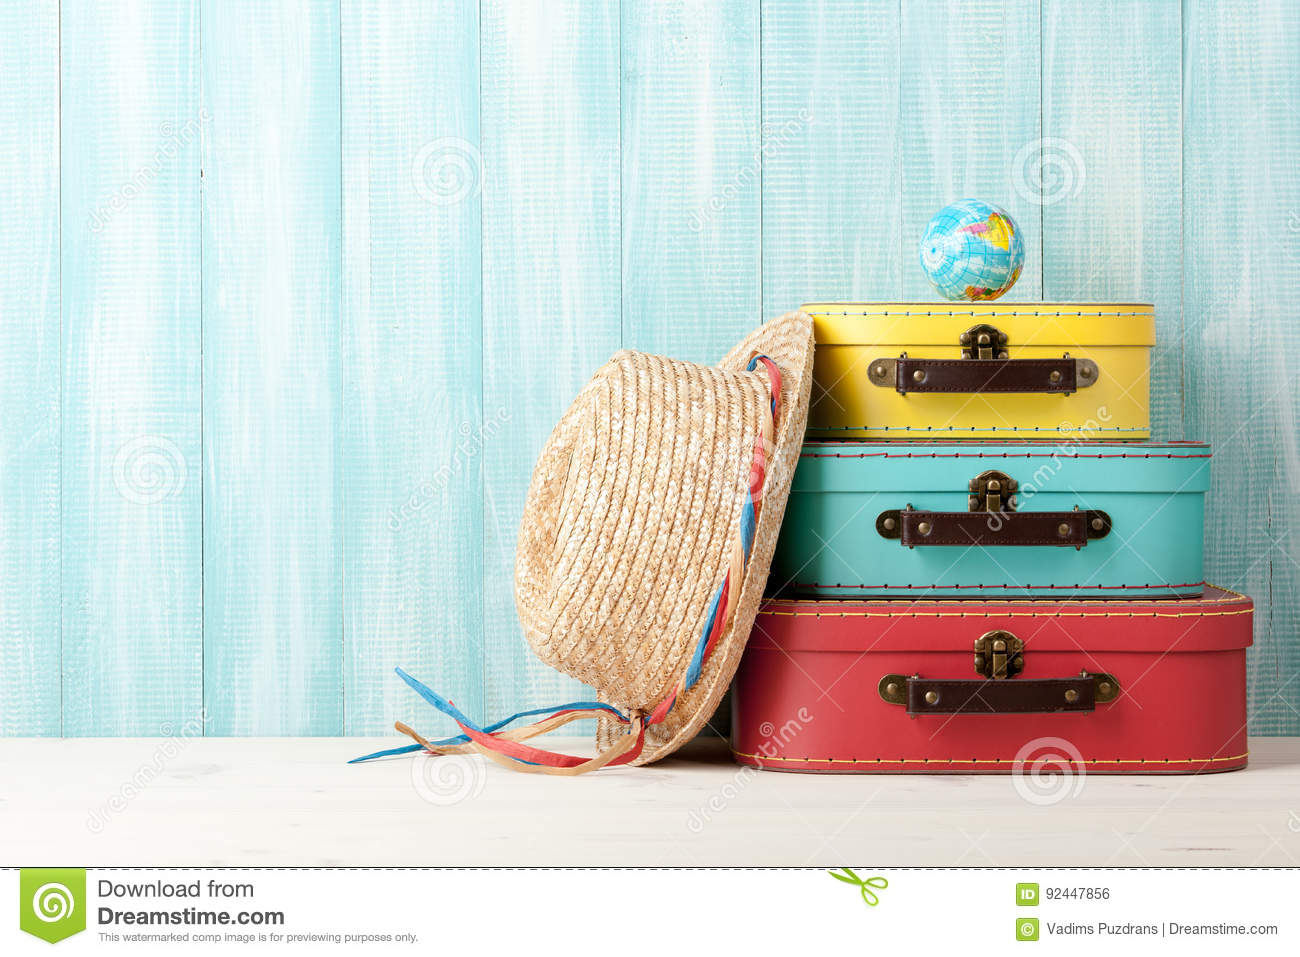 Travel concept with retro style suitcases, straw hat and globe o